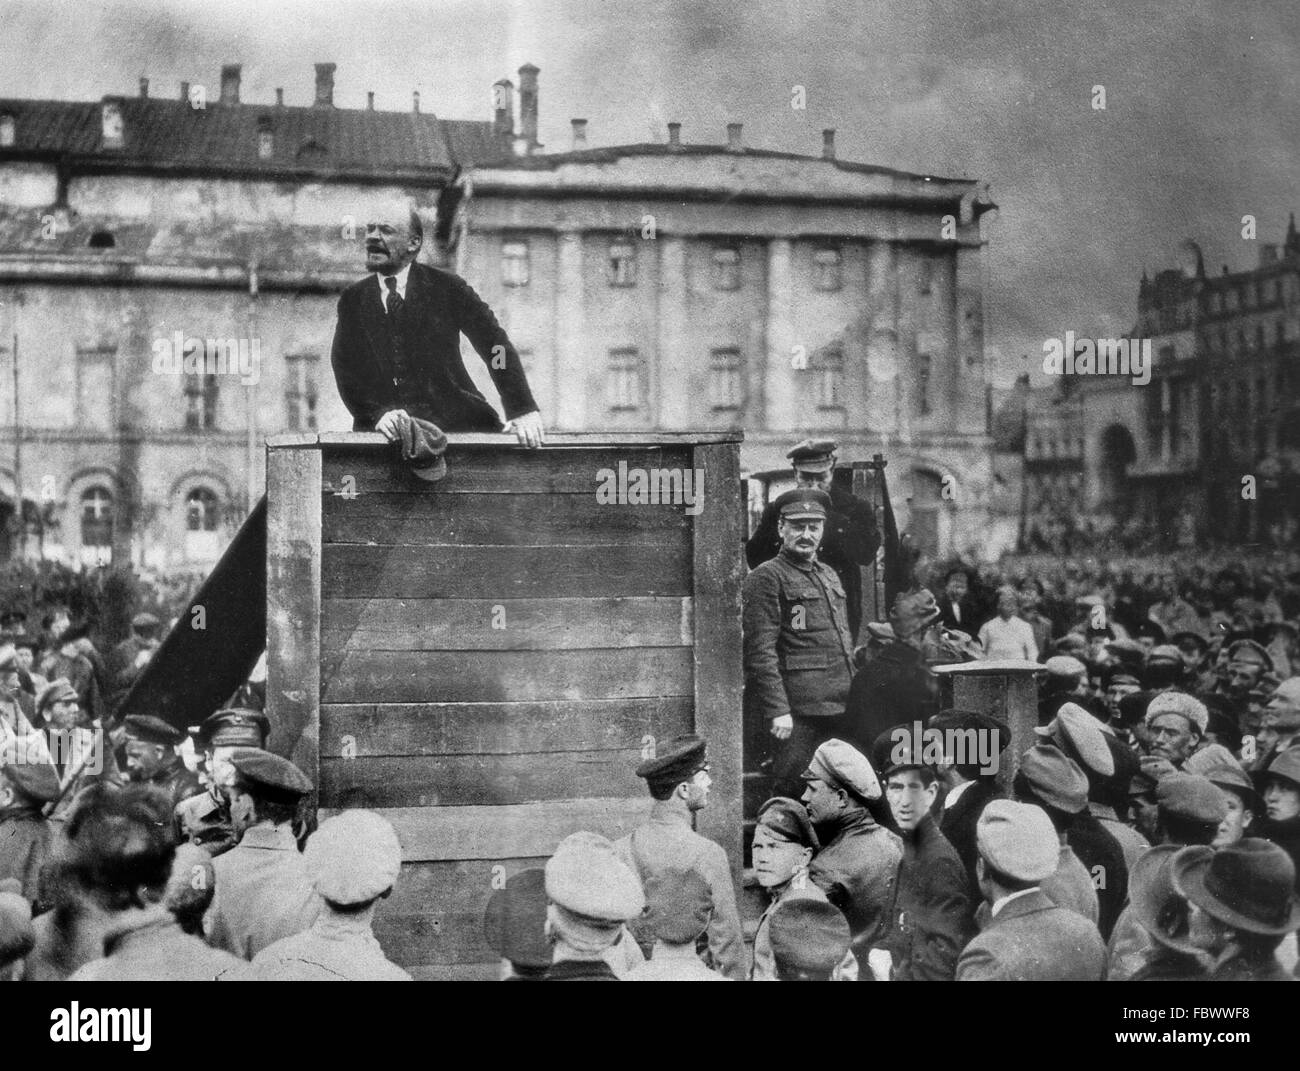 Lenin speech. Vladimir Lenin addressing a crowd of soldiers about to go to war in Poland in the Polish-Soviet War - Stock Image